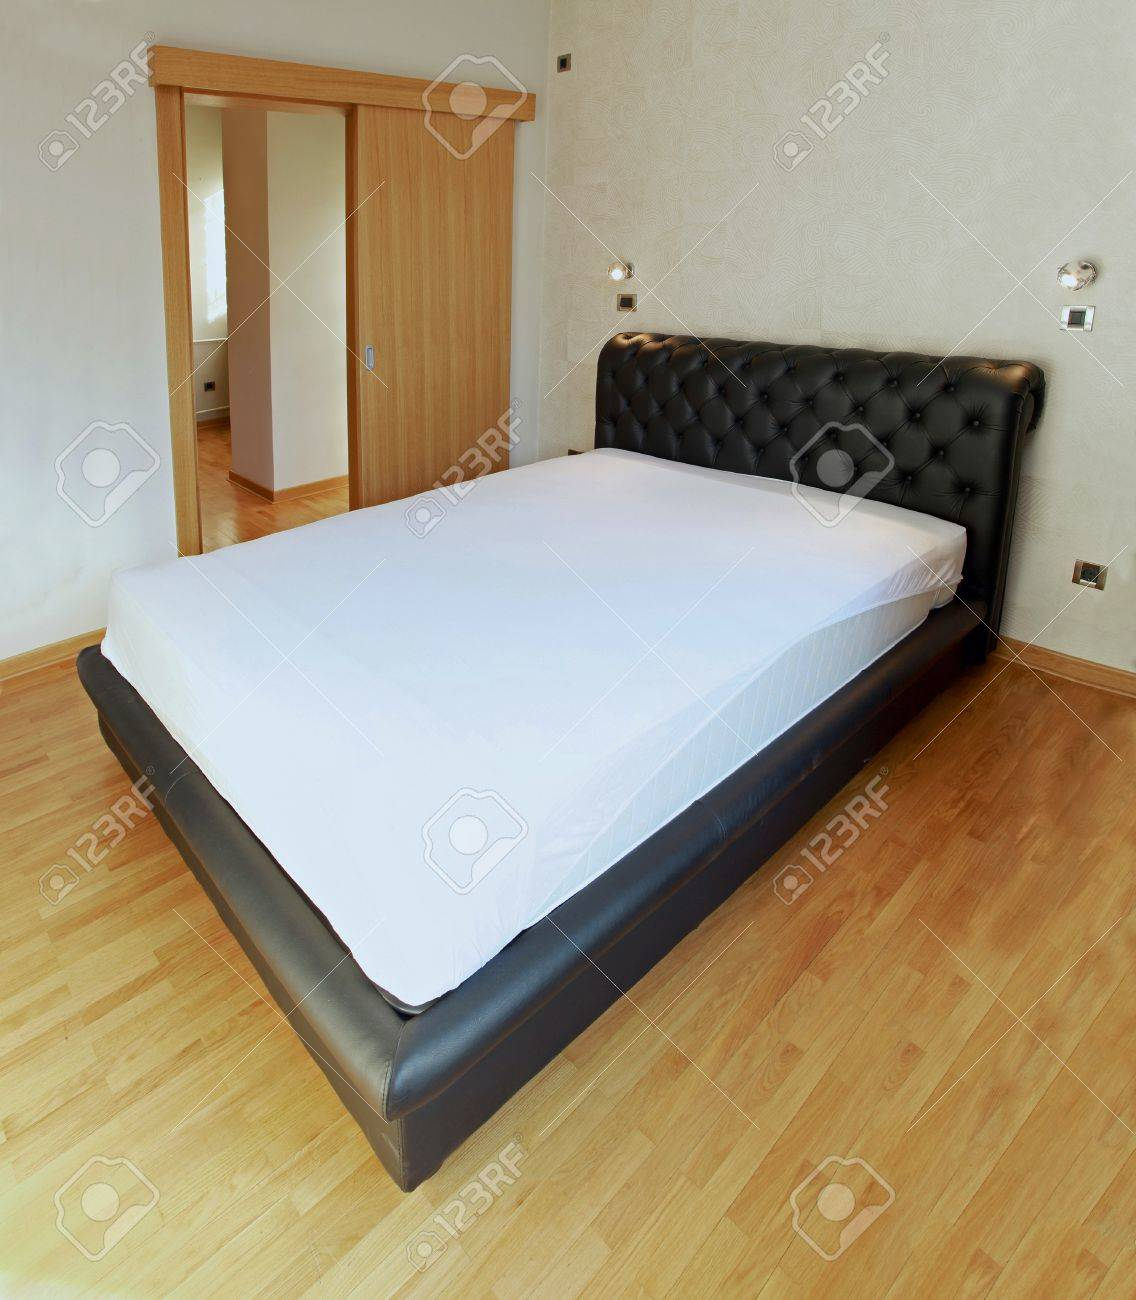 Large leather double bed in empty bedroom Stock Photo - 16684087